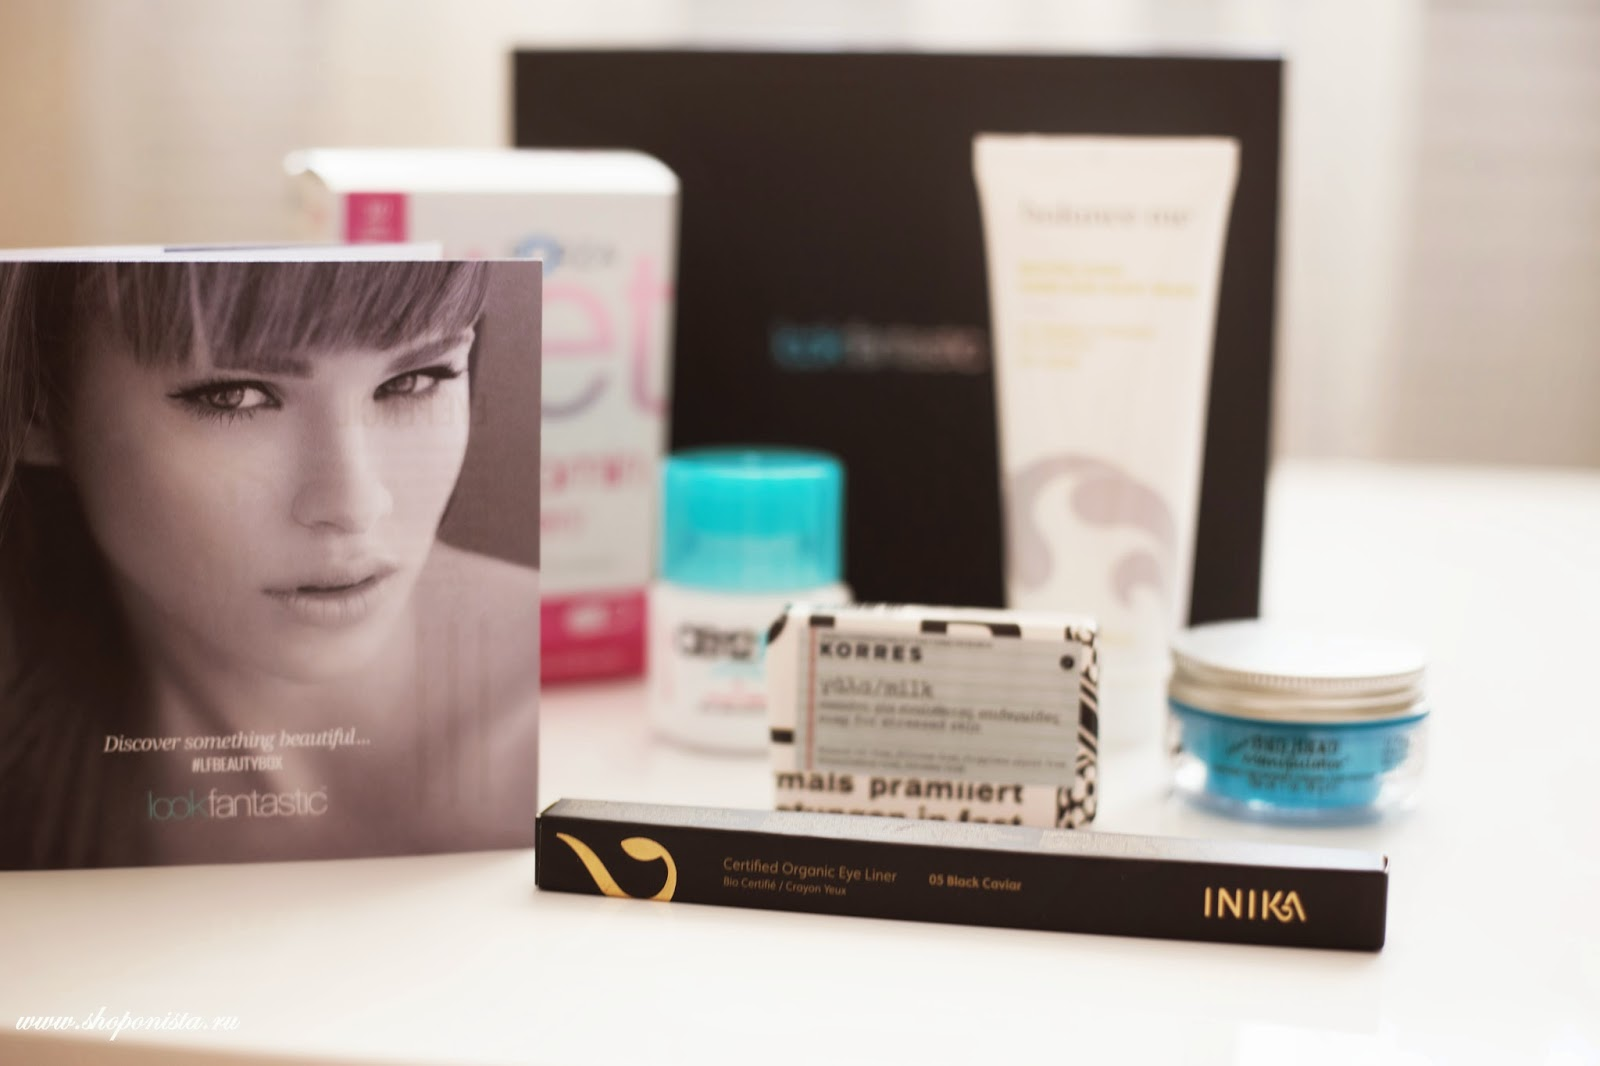 Lookfantastic Beauty Box April 2015